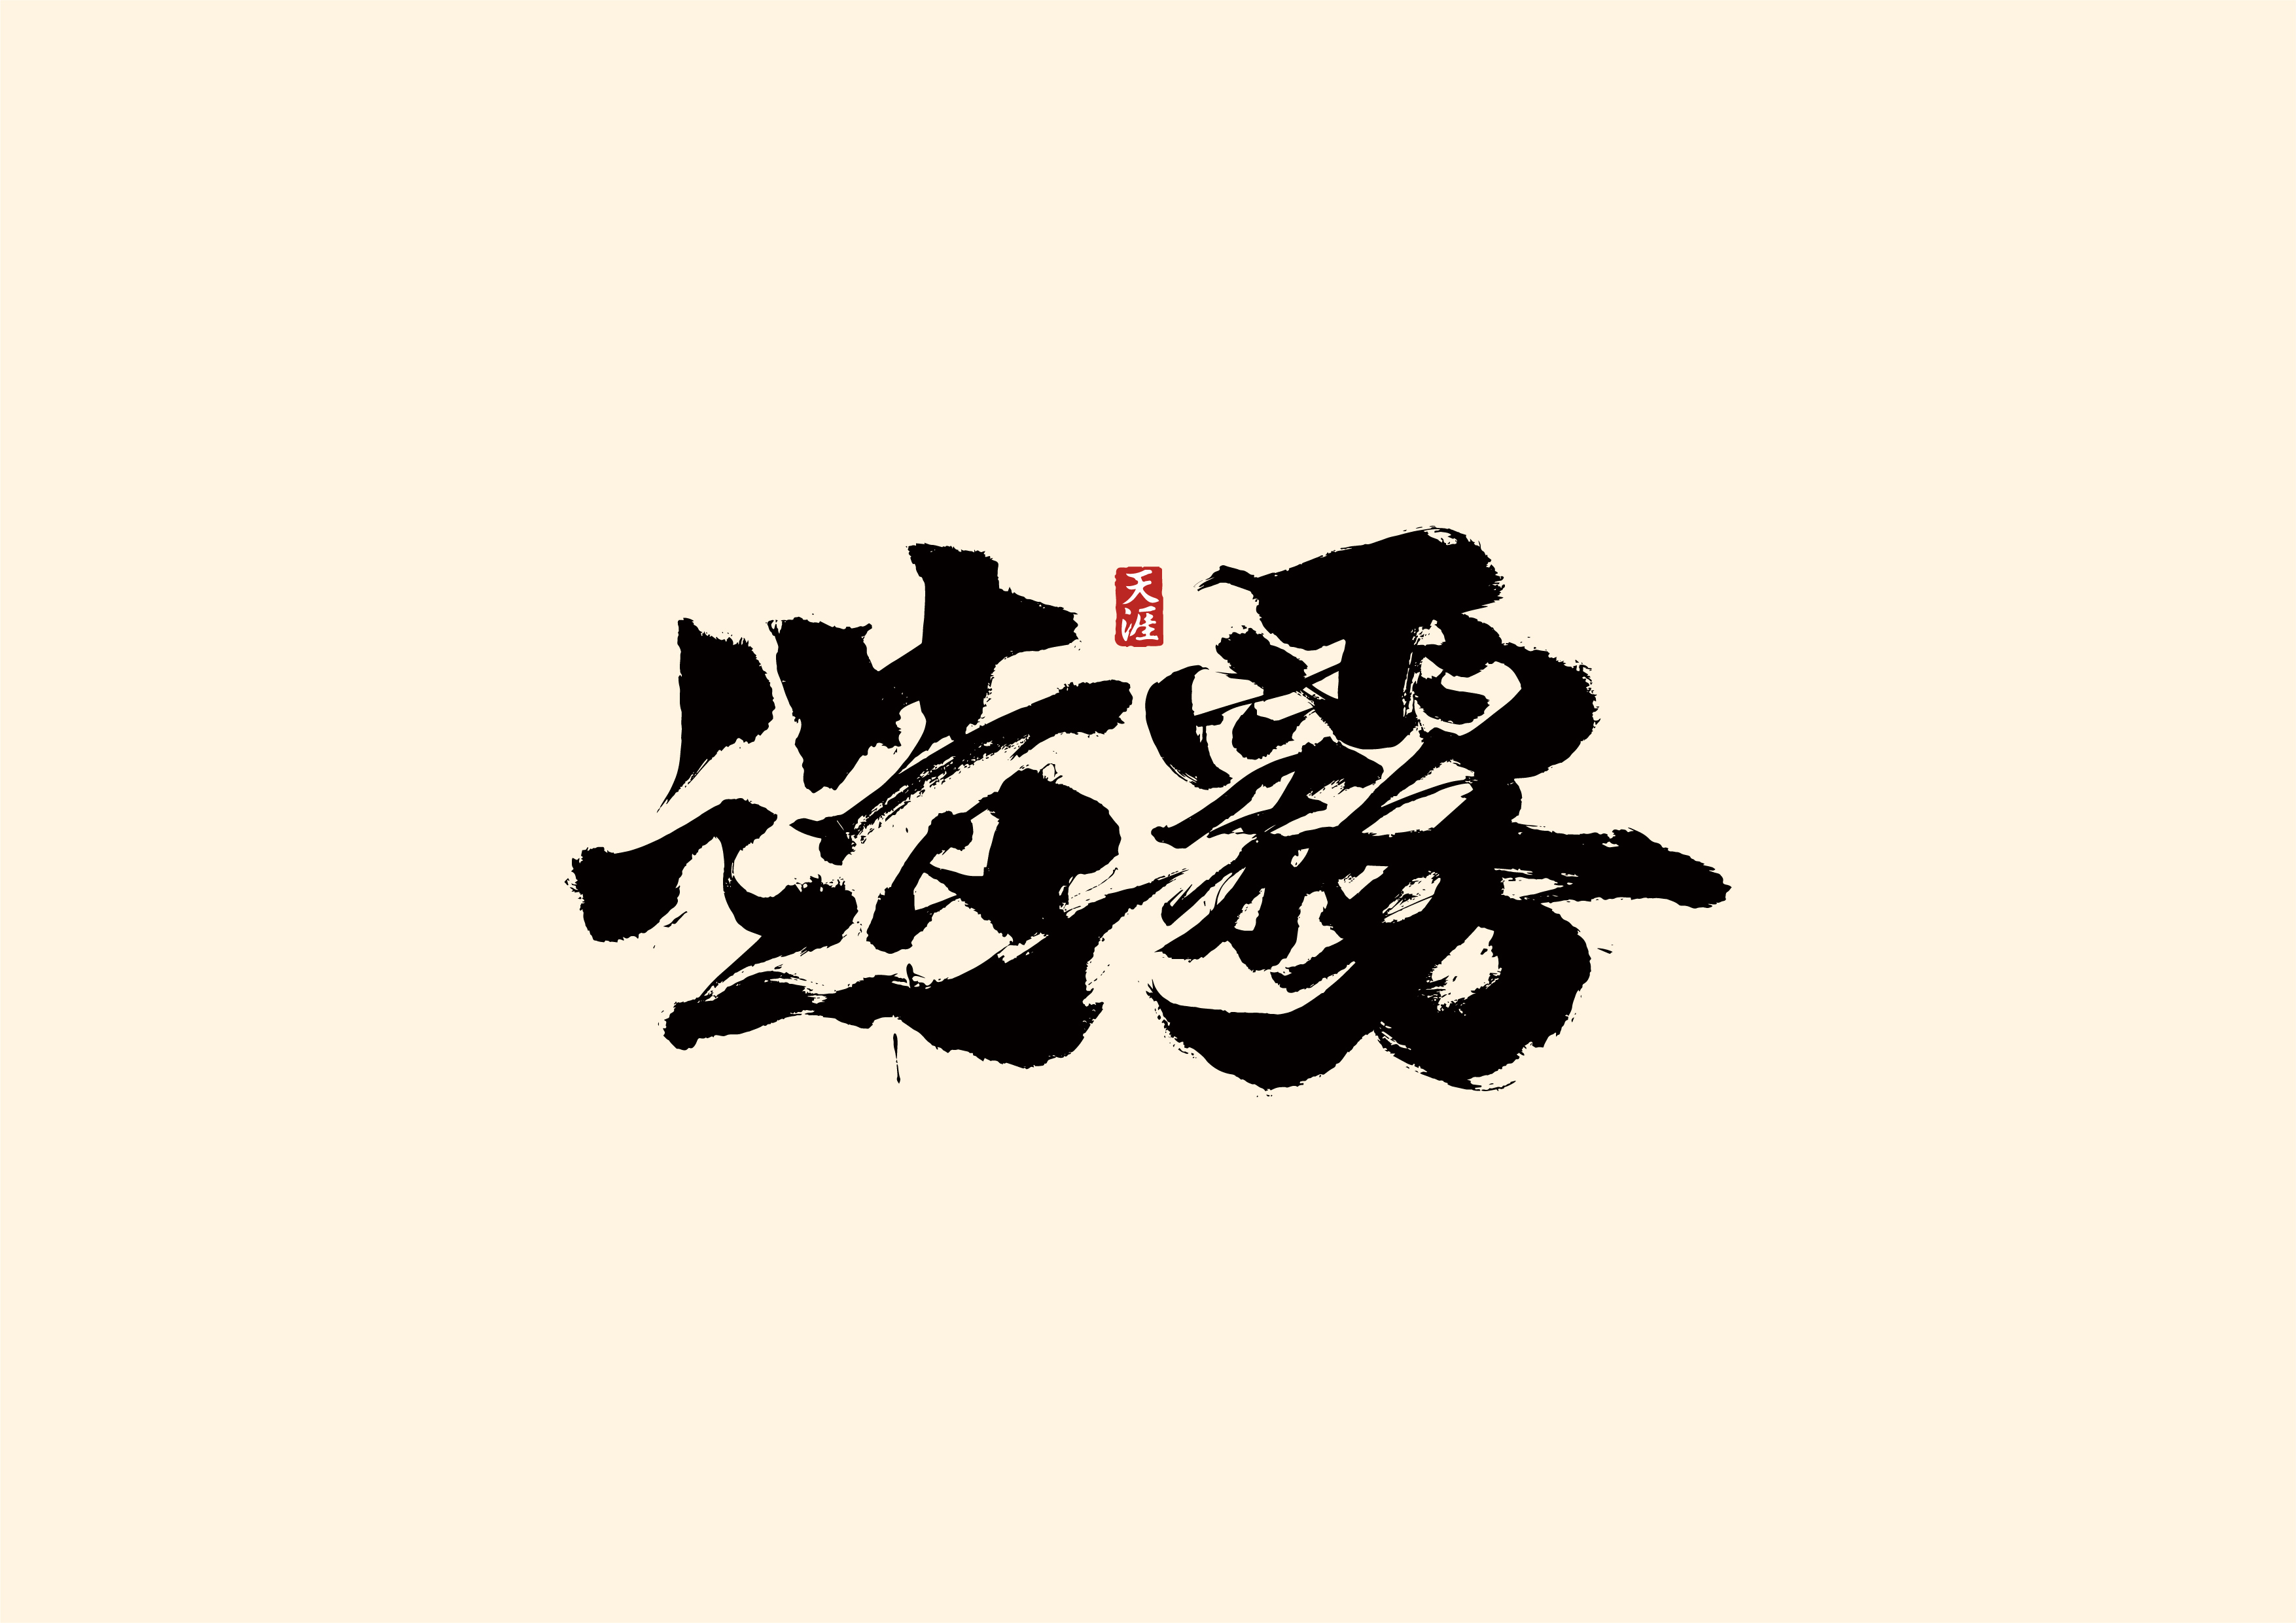 19P Collection of the latest Chinese font design schemes in 2021 #.40